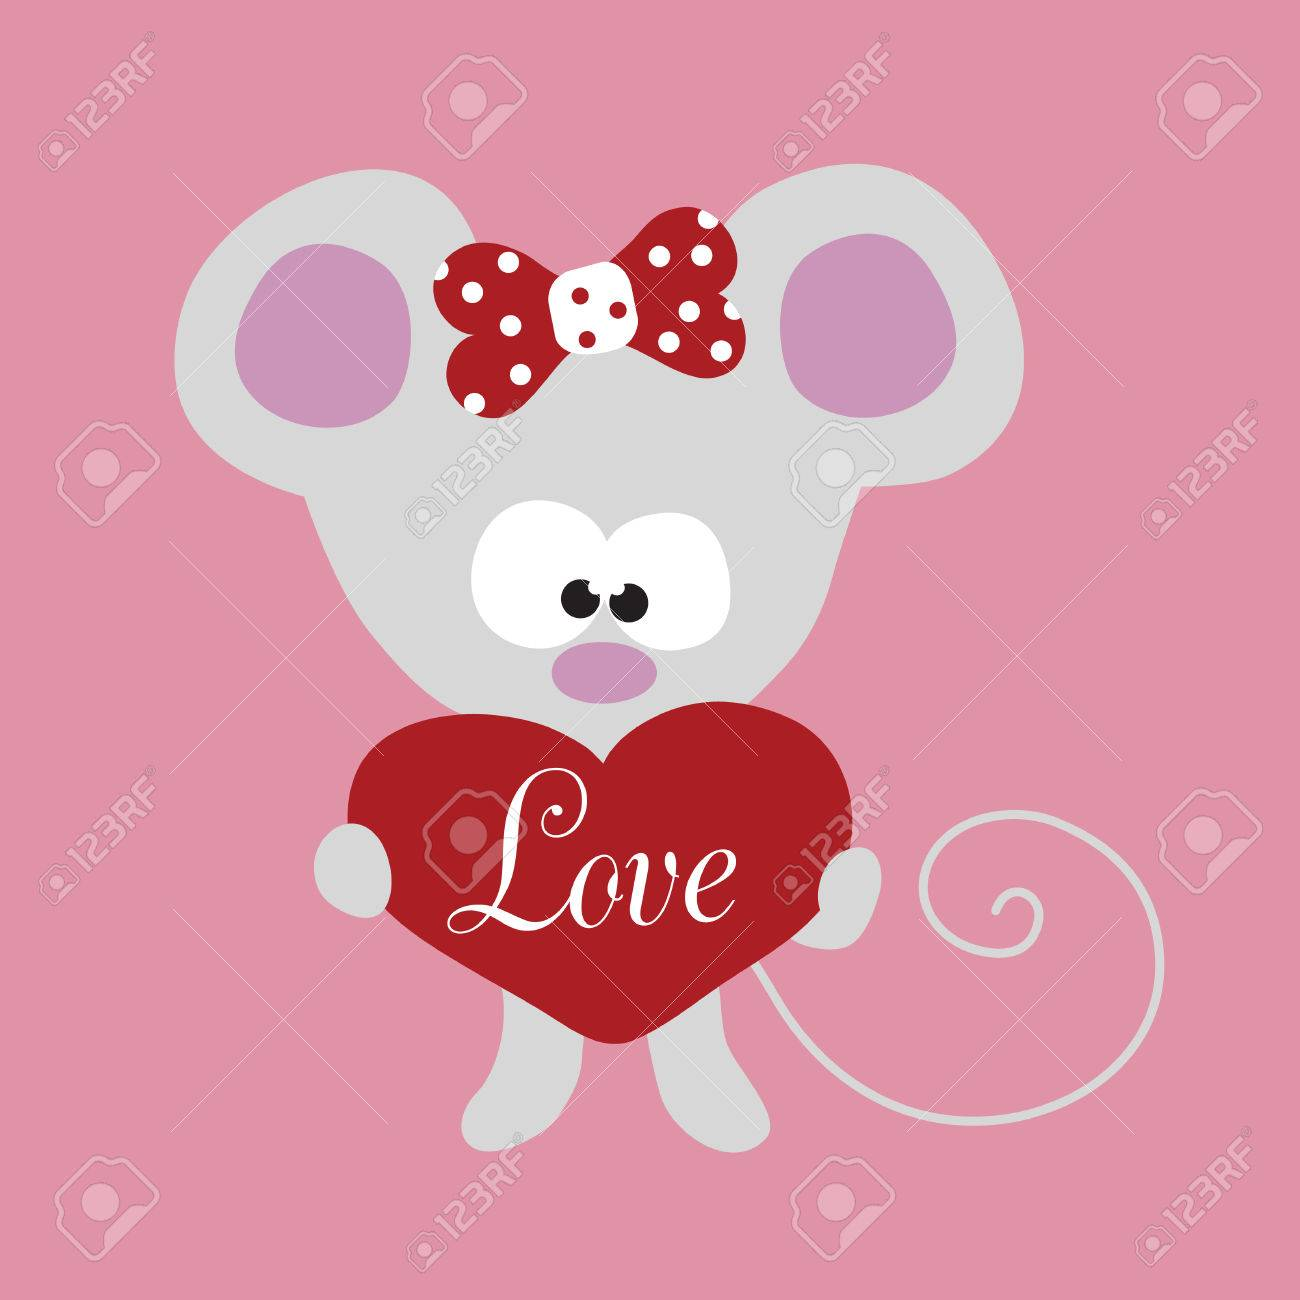 Valentine Little Mouse with Big Heart Stock Vector - 5528874